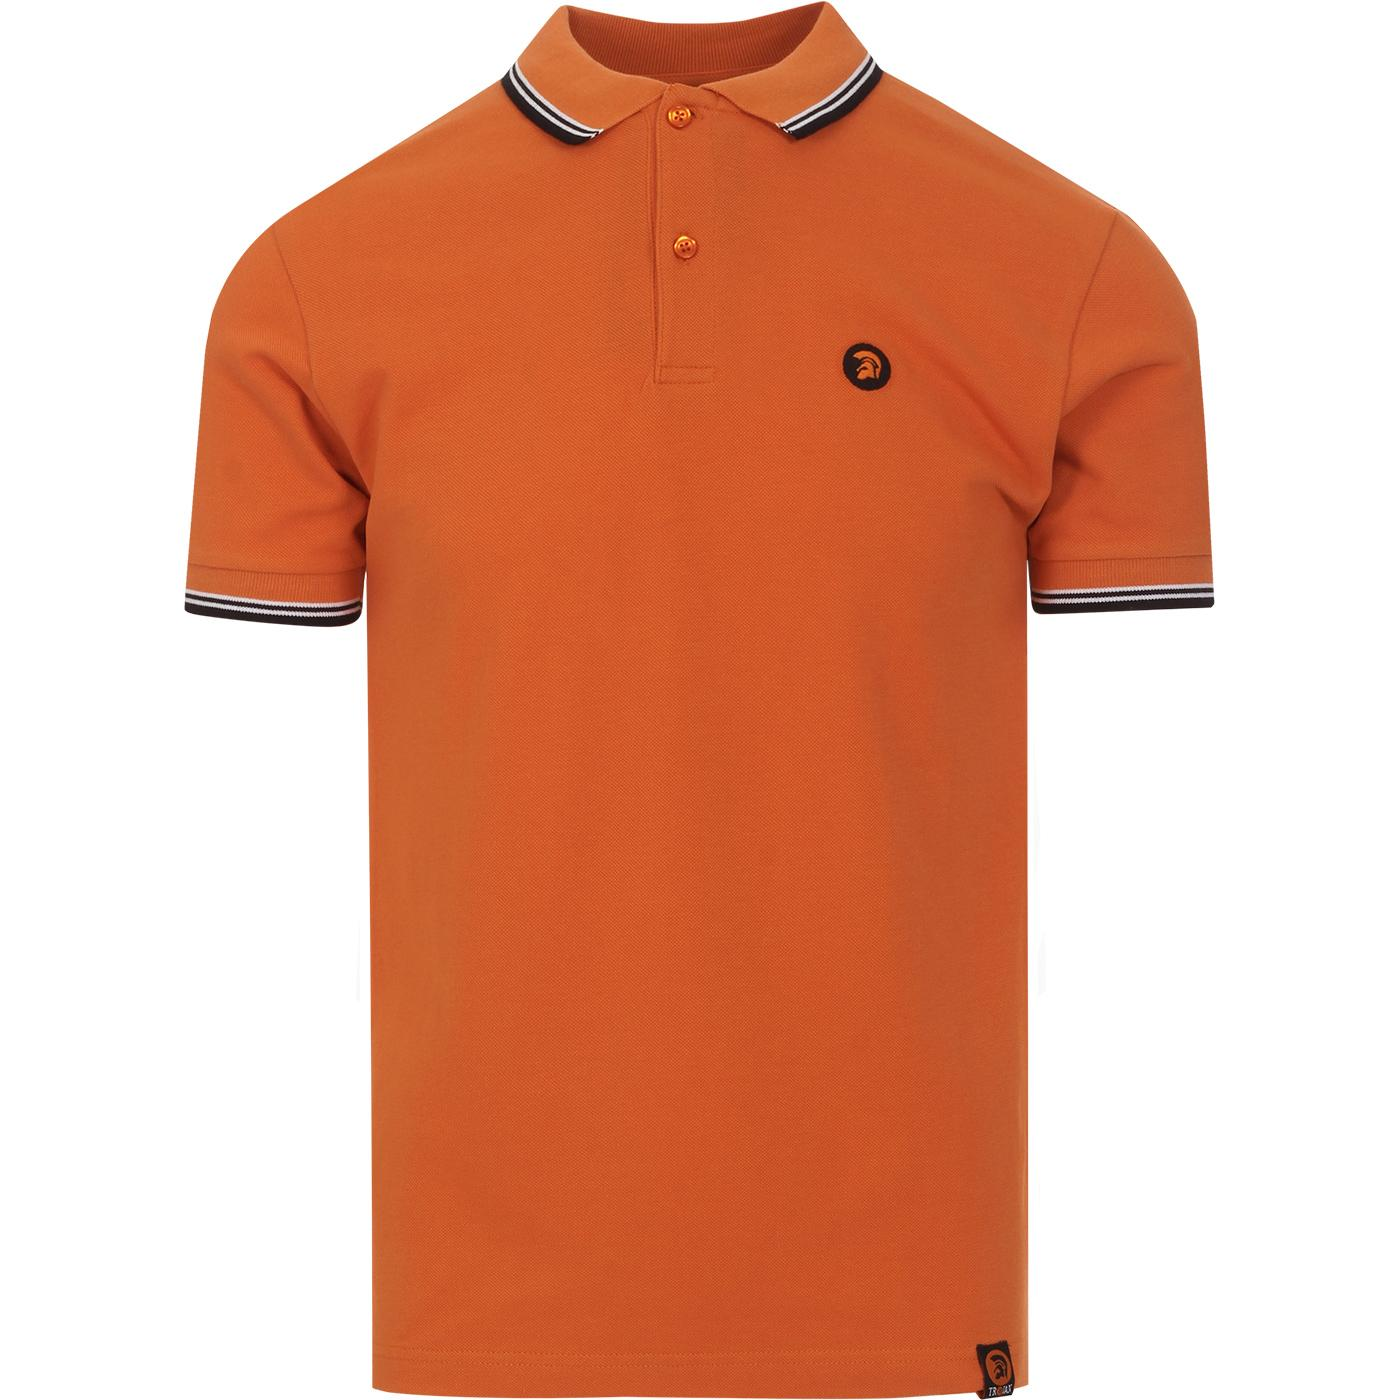 TROJAN RECORDS Classic Mod Tipped Polo (Orange)